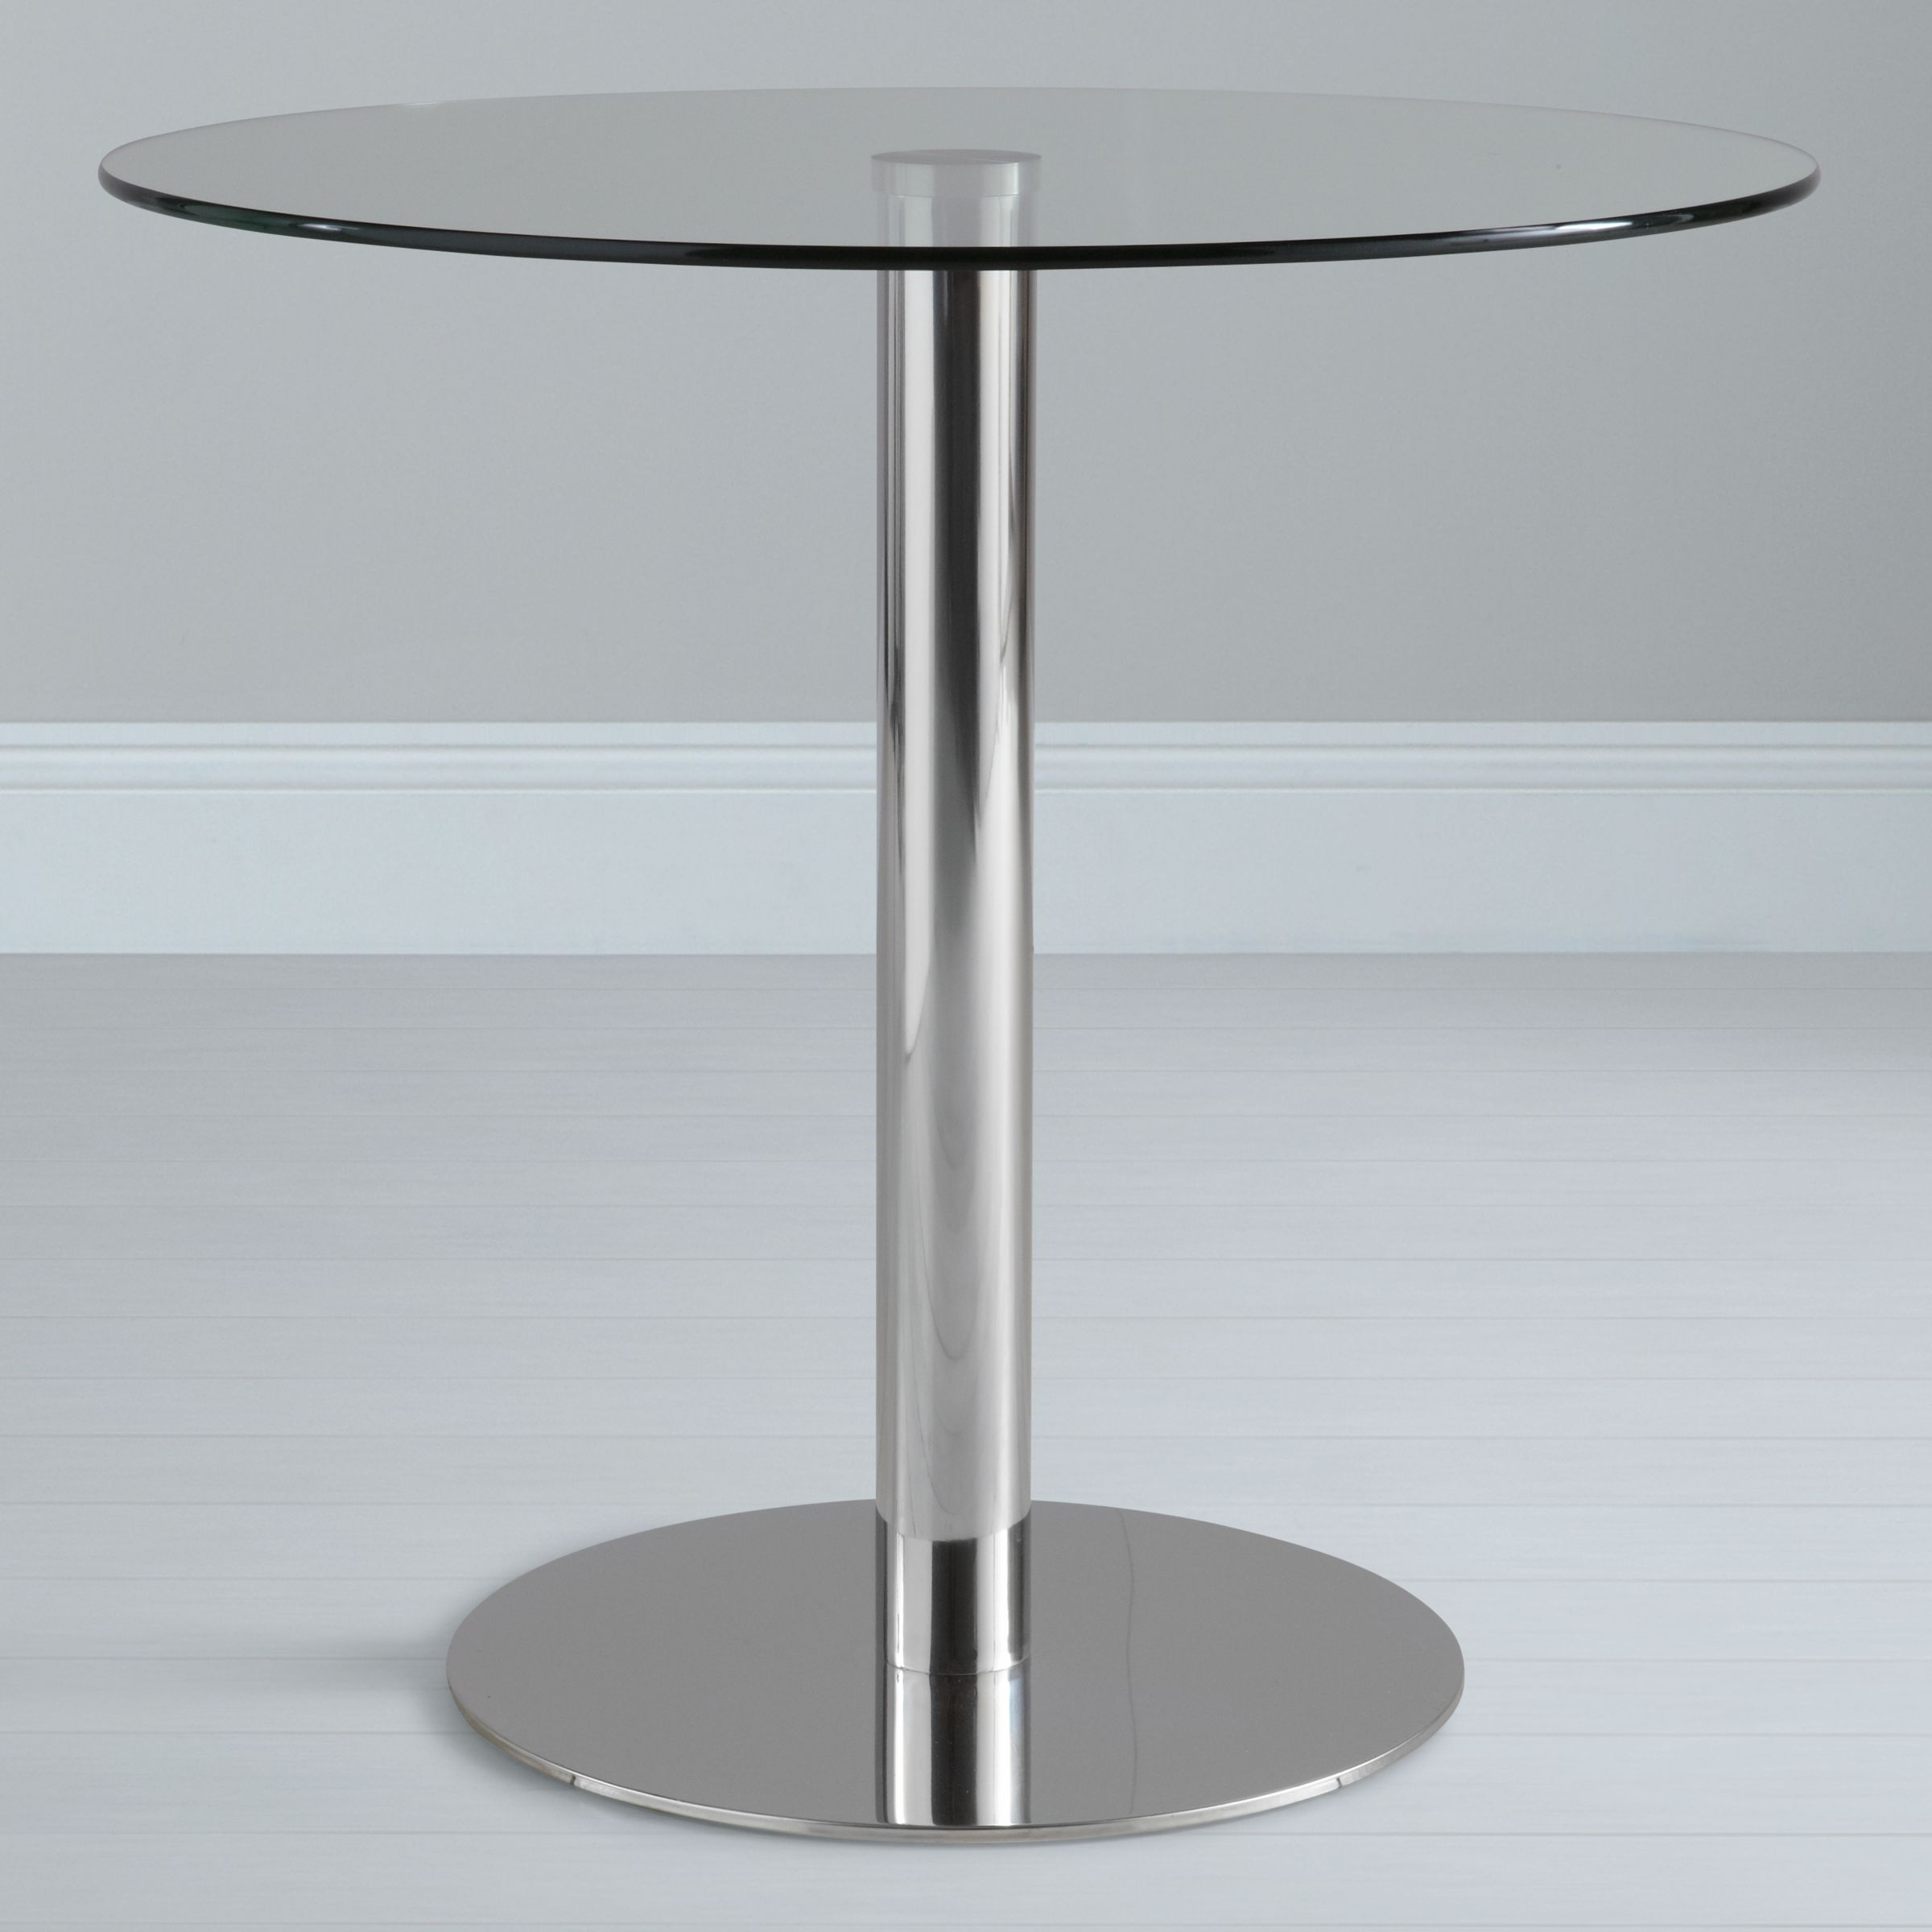 Compact glass dining table Shop for cheap Tables and  : 231774267zoom from case.priceinspector.co.uk size 1600 x 1600 jpeg 187kB